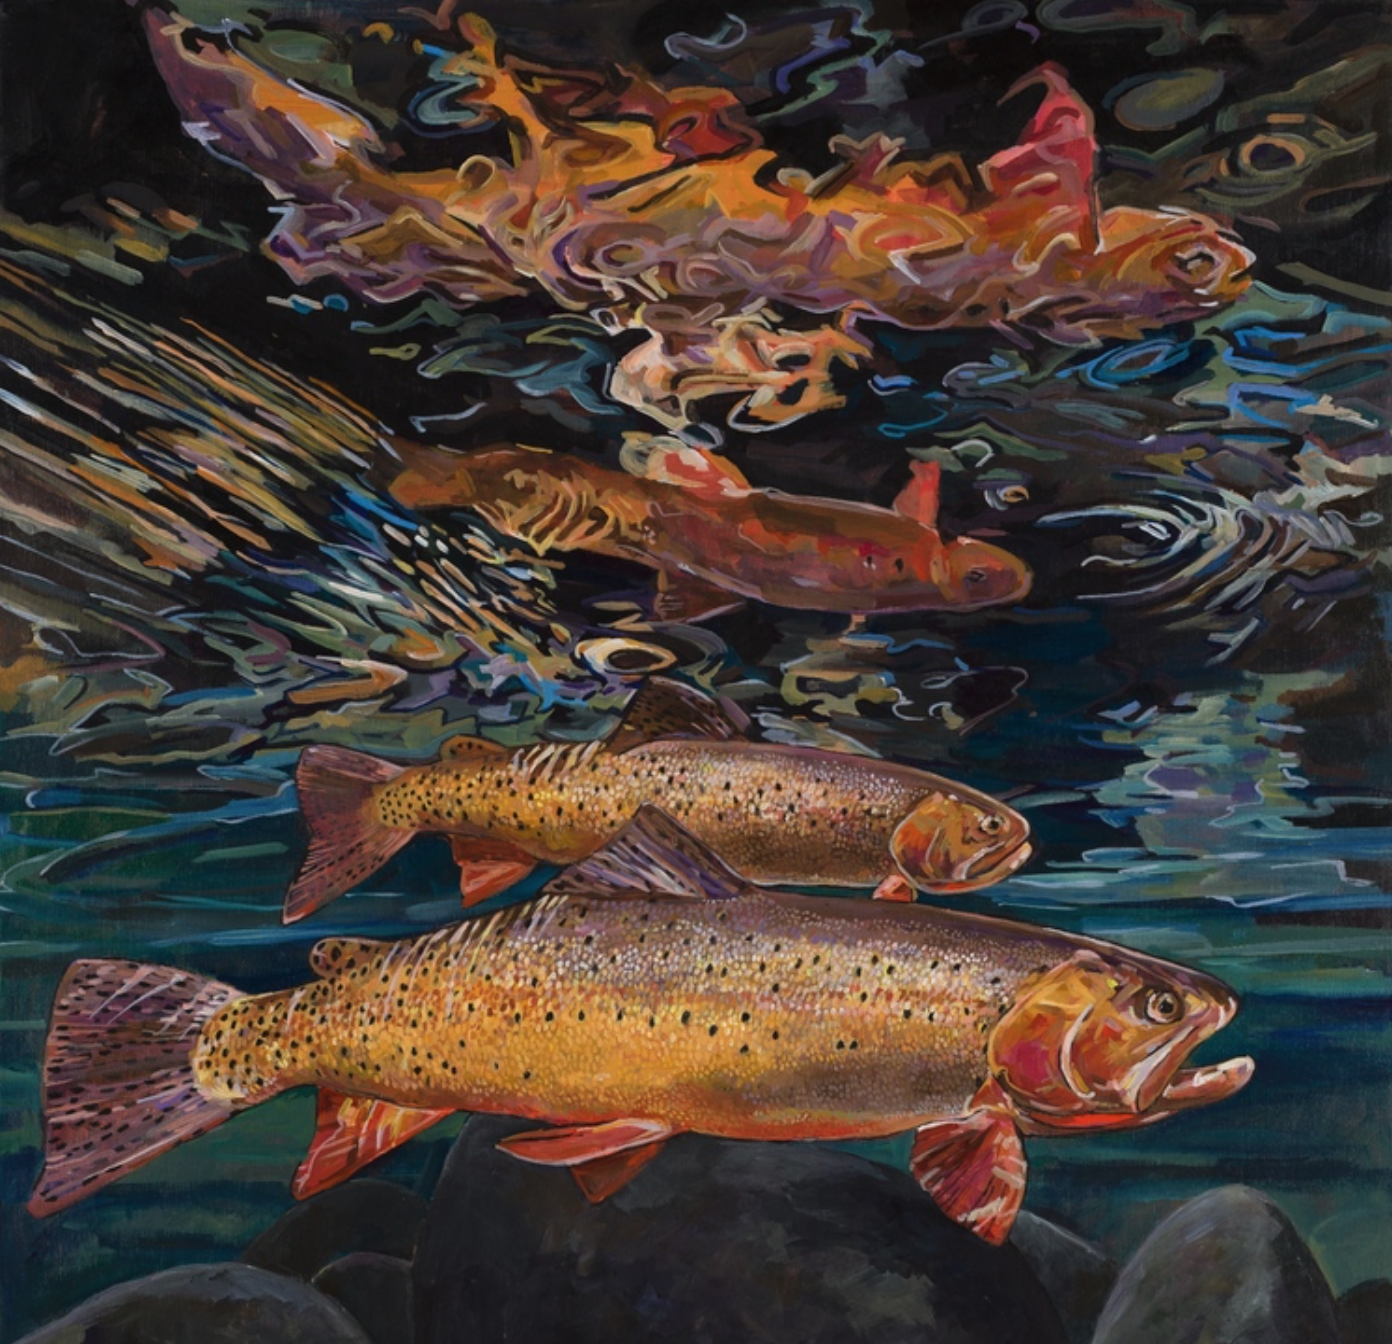 Josh Udesen - http://www.tightlinestudio.comMy acrylic paintings are layered washes on framed birch panels focusing on unique perspectives.